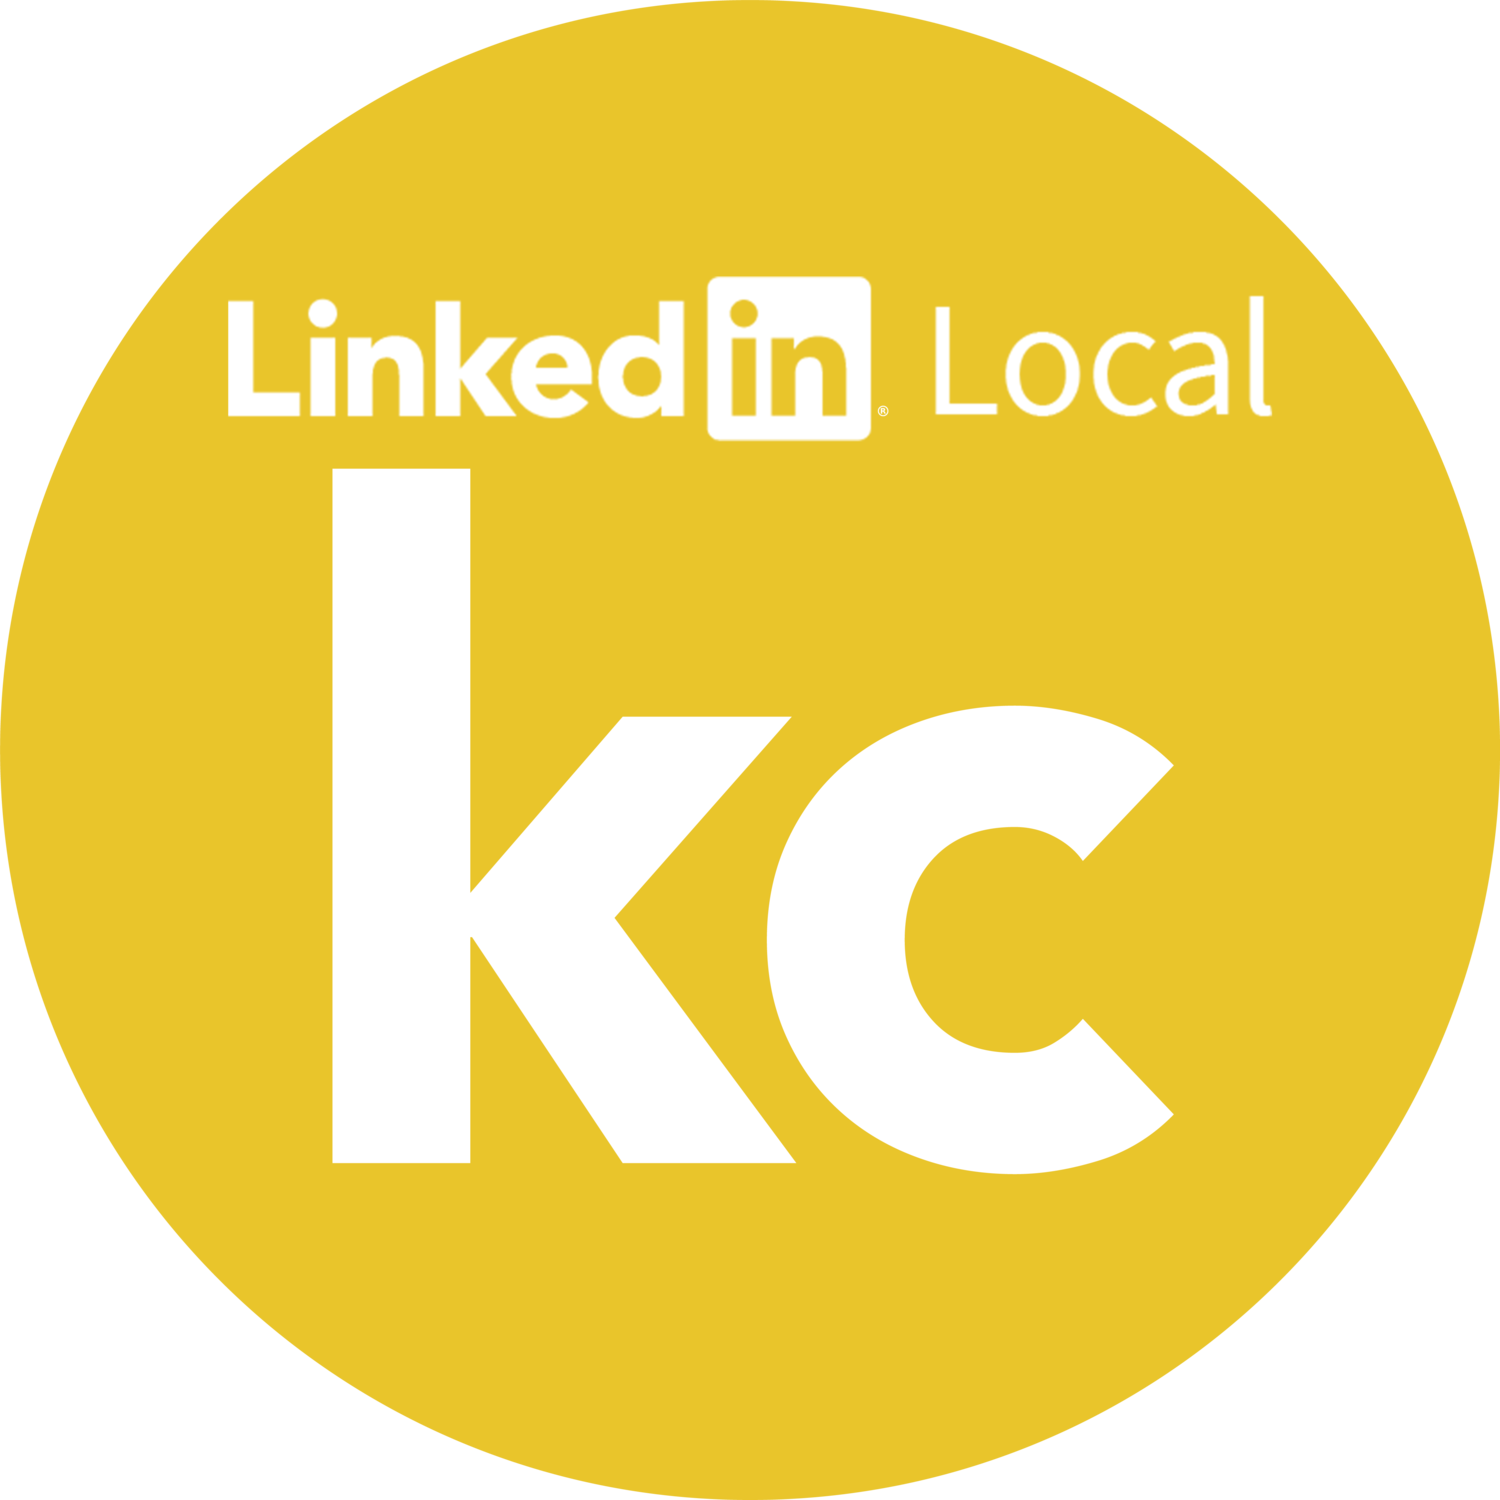 LinkedIn Local KC